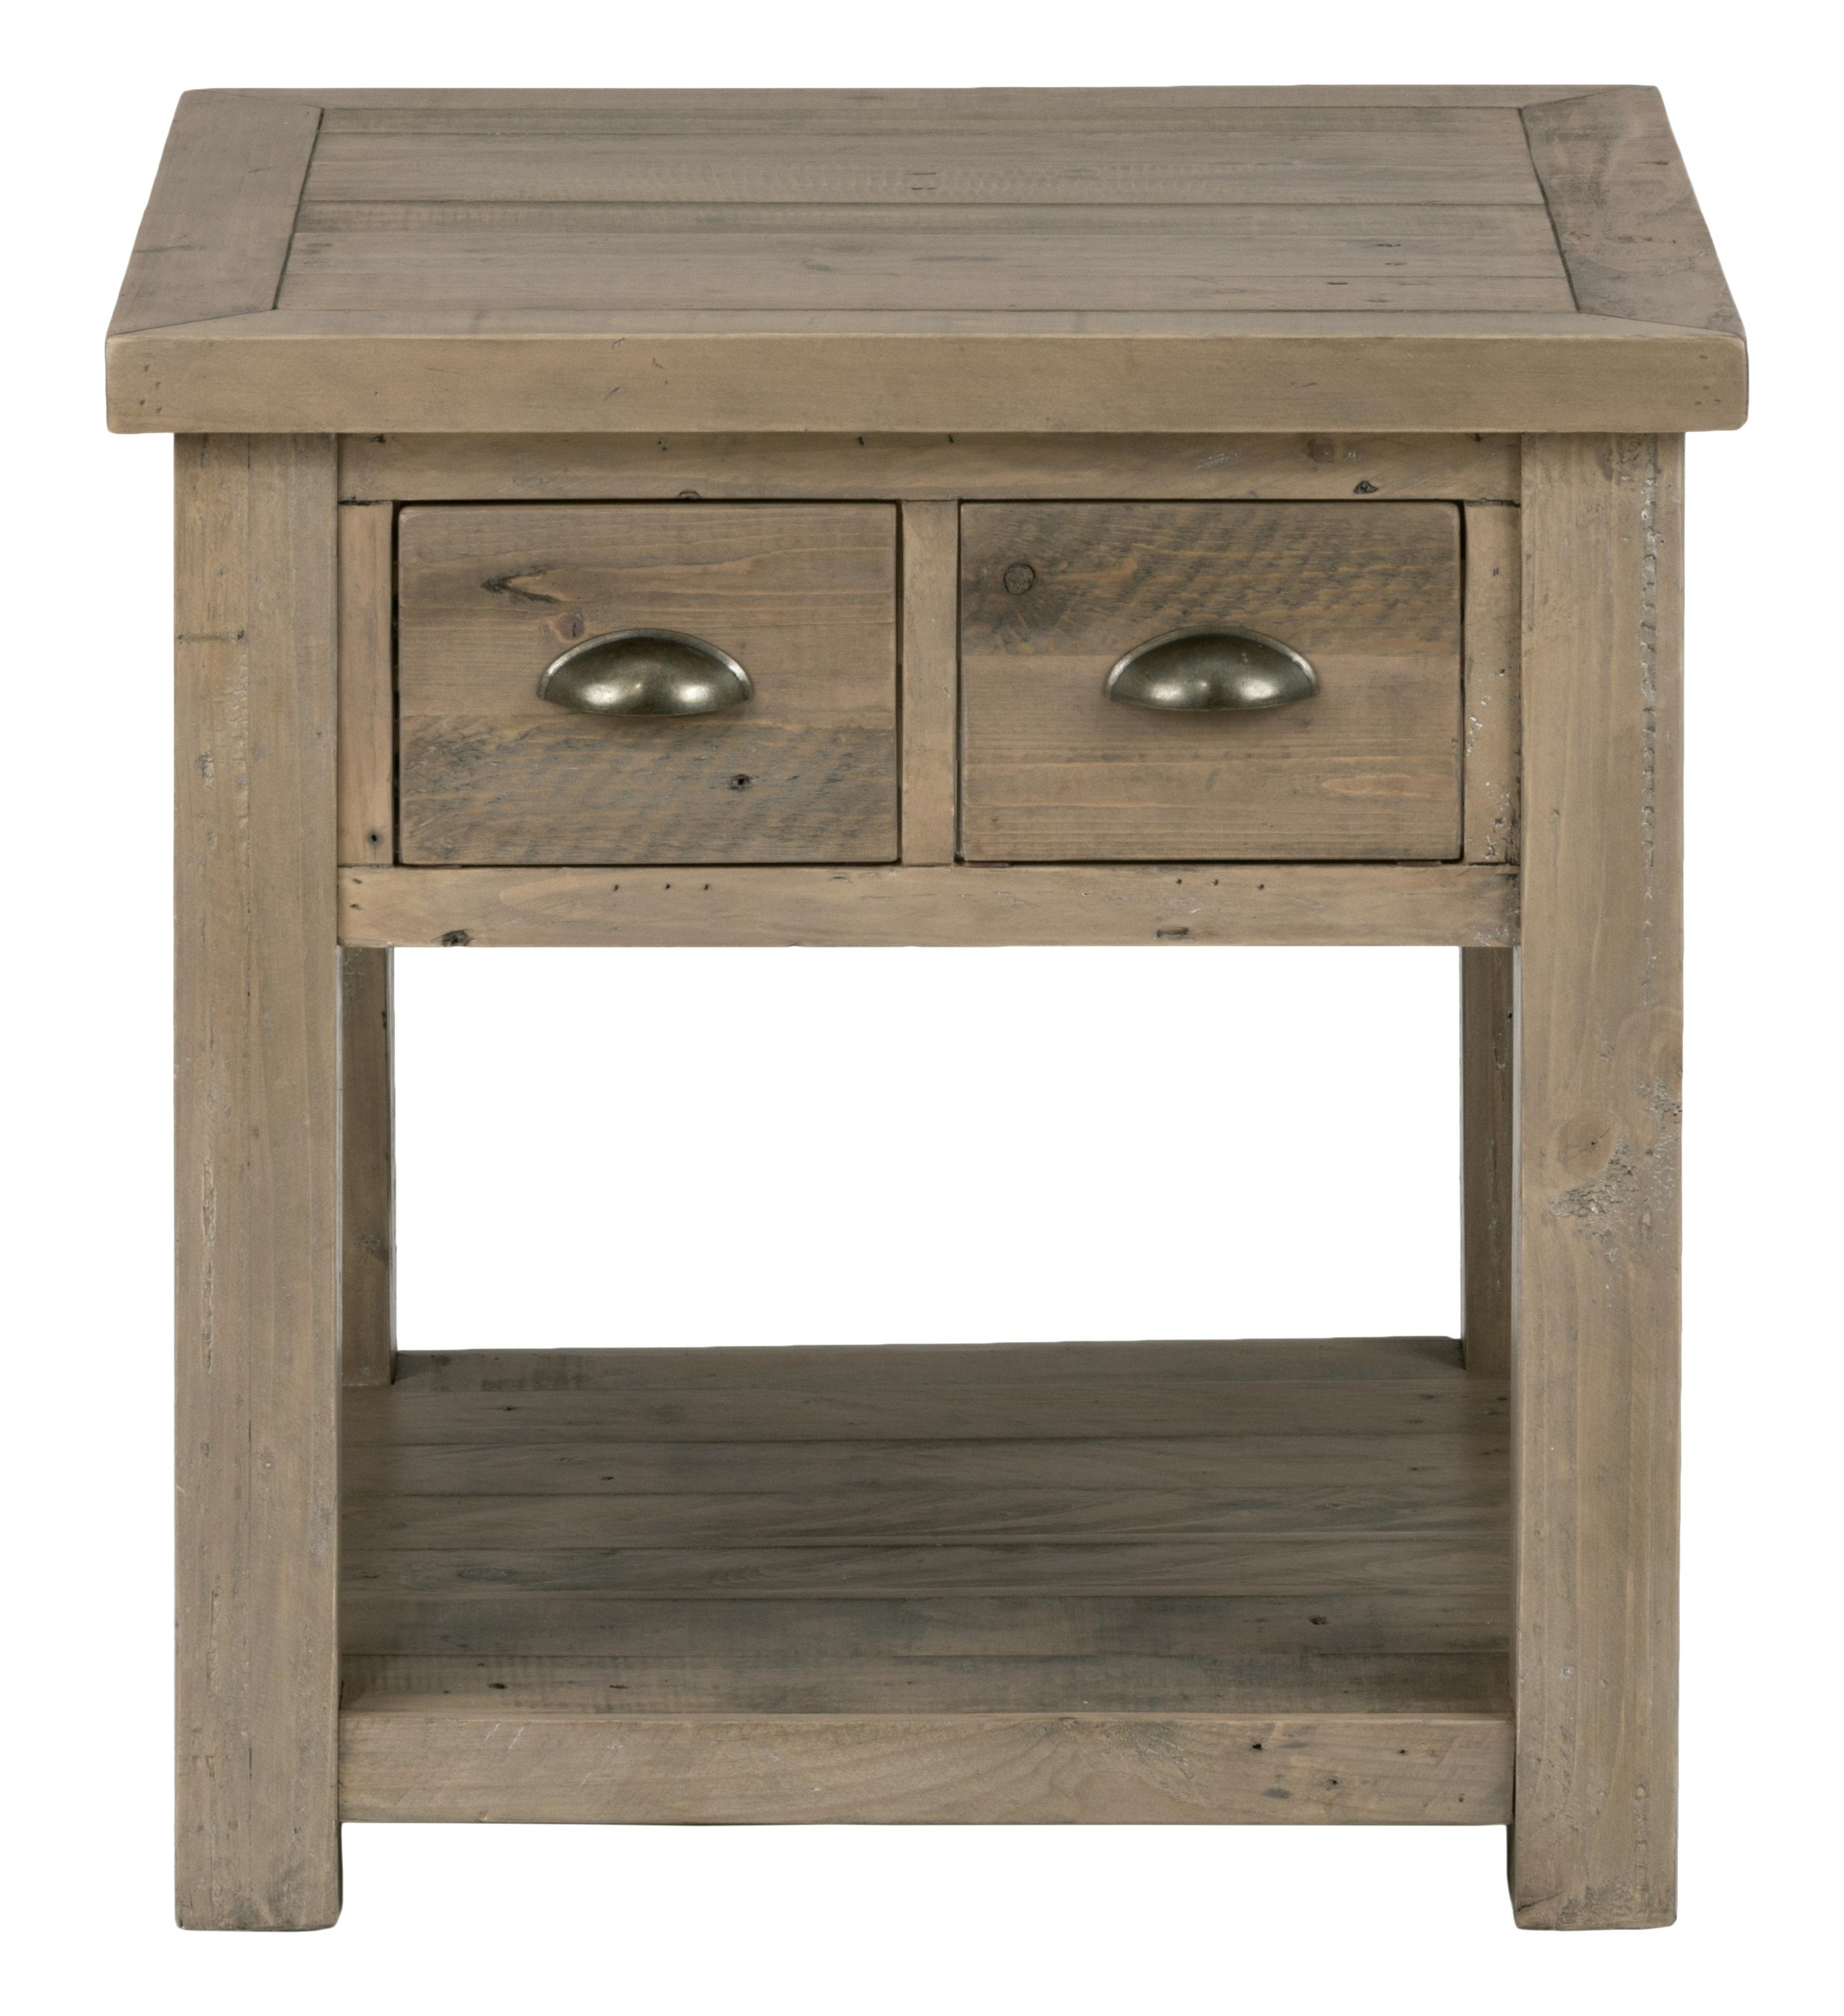 Jofran Slater Mill Pine End Table   Item Number: 940 3